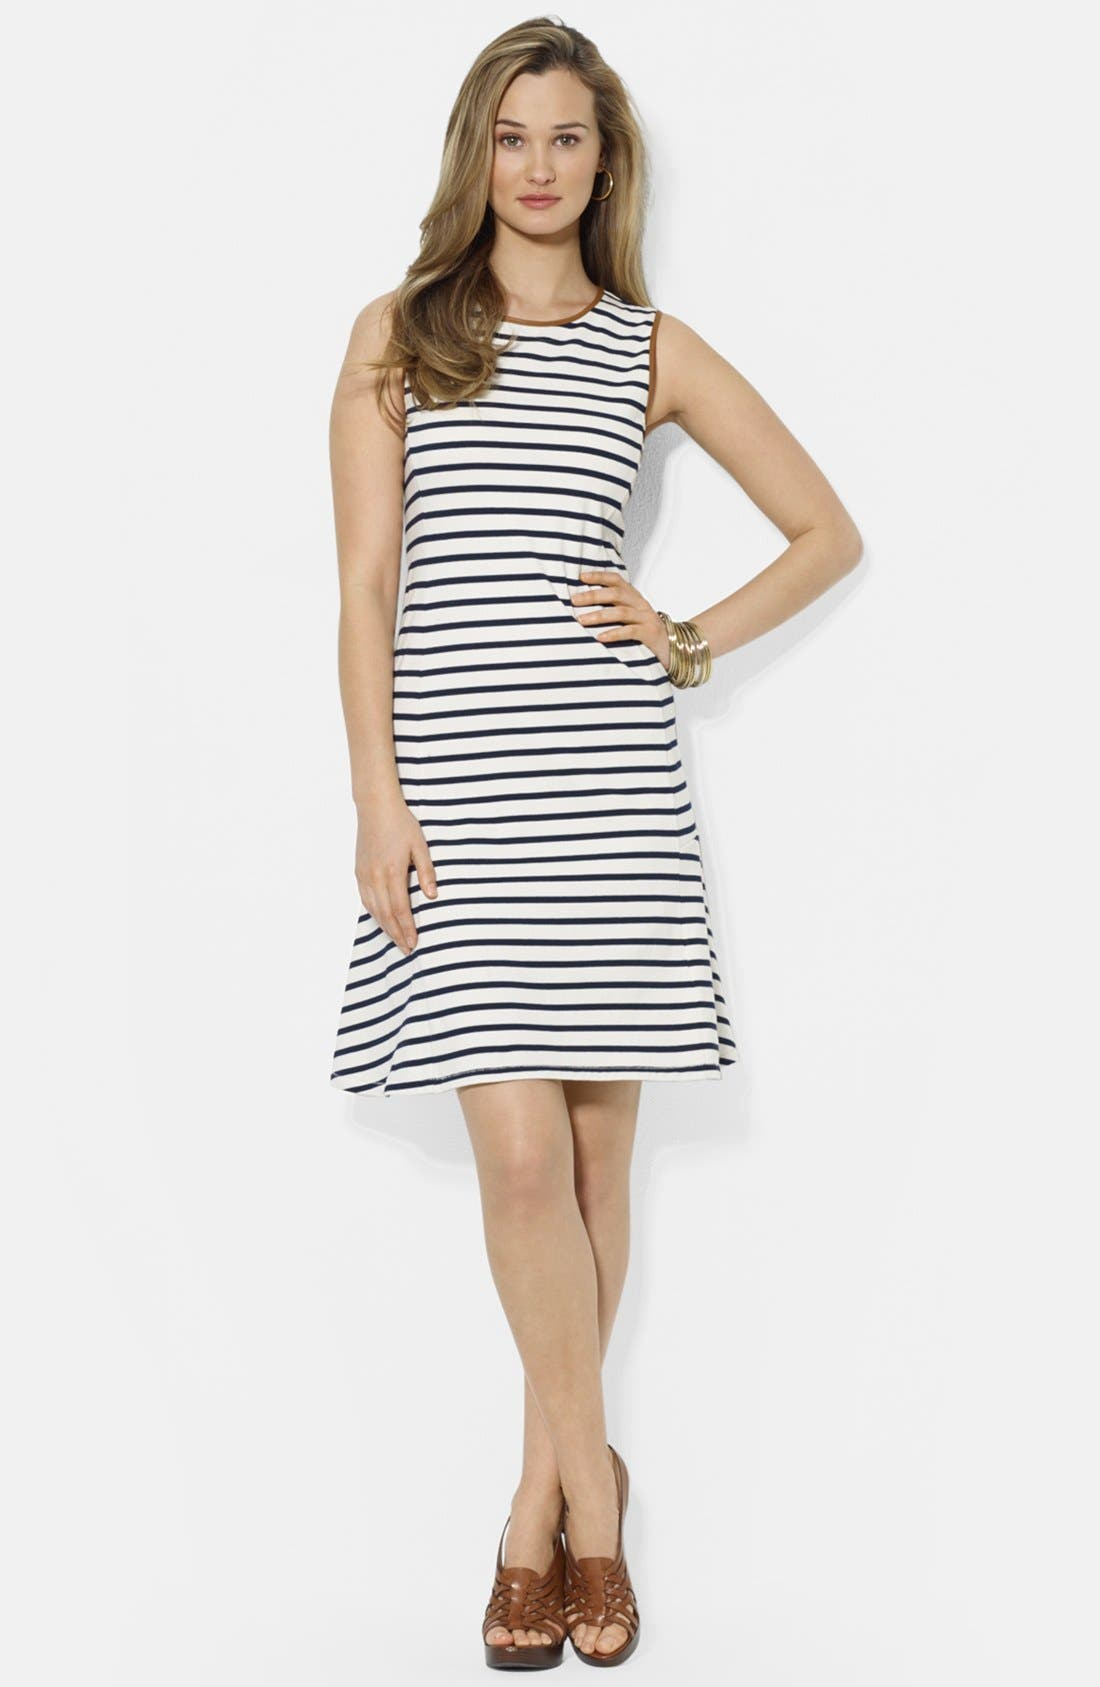 Alternate Image 1 Selected - Lauren Ralph Lauren Faux Leather Trim Stripe Cotton Dress (Petite)